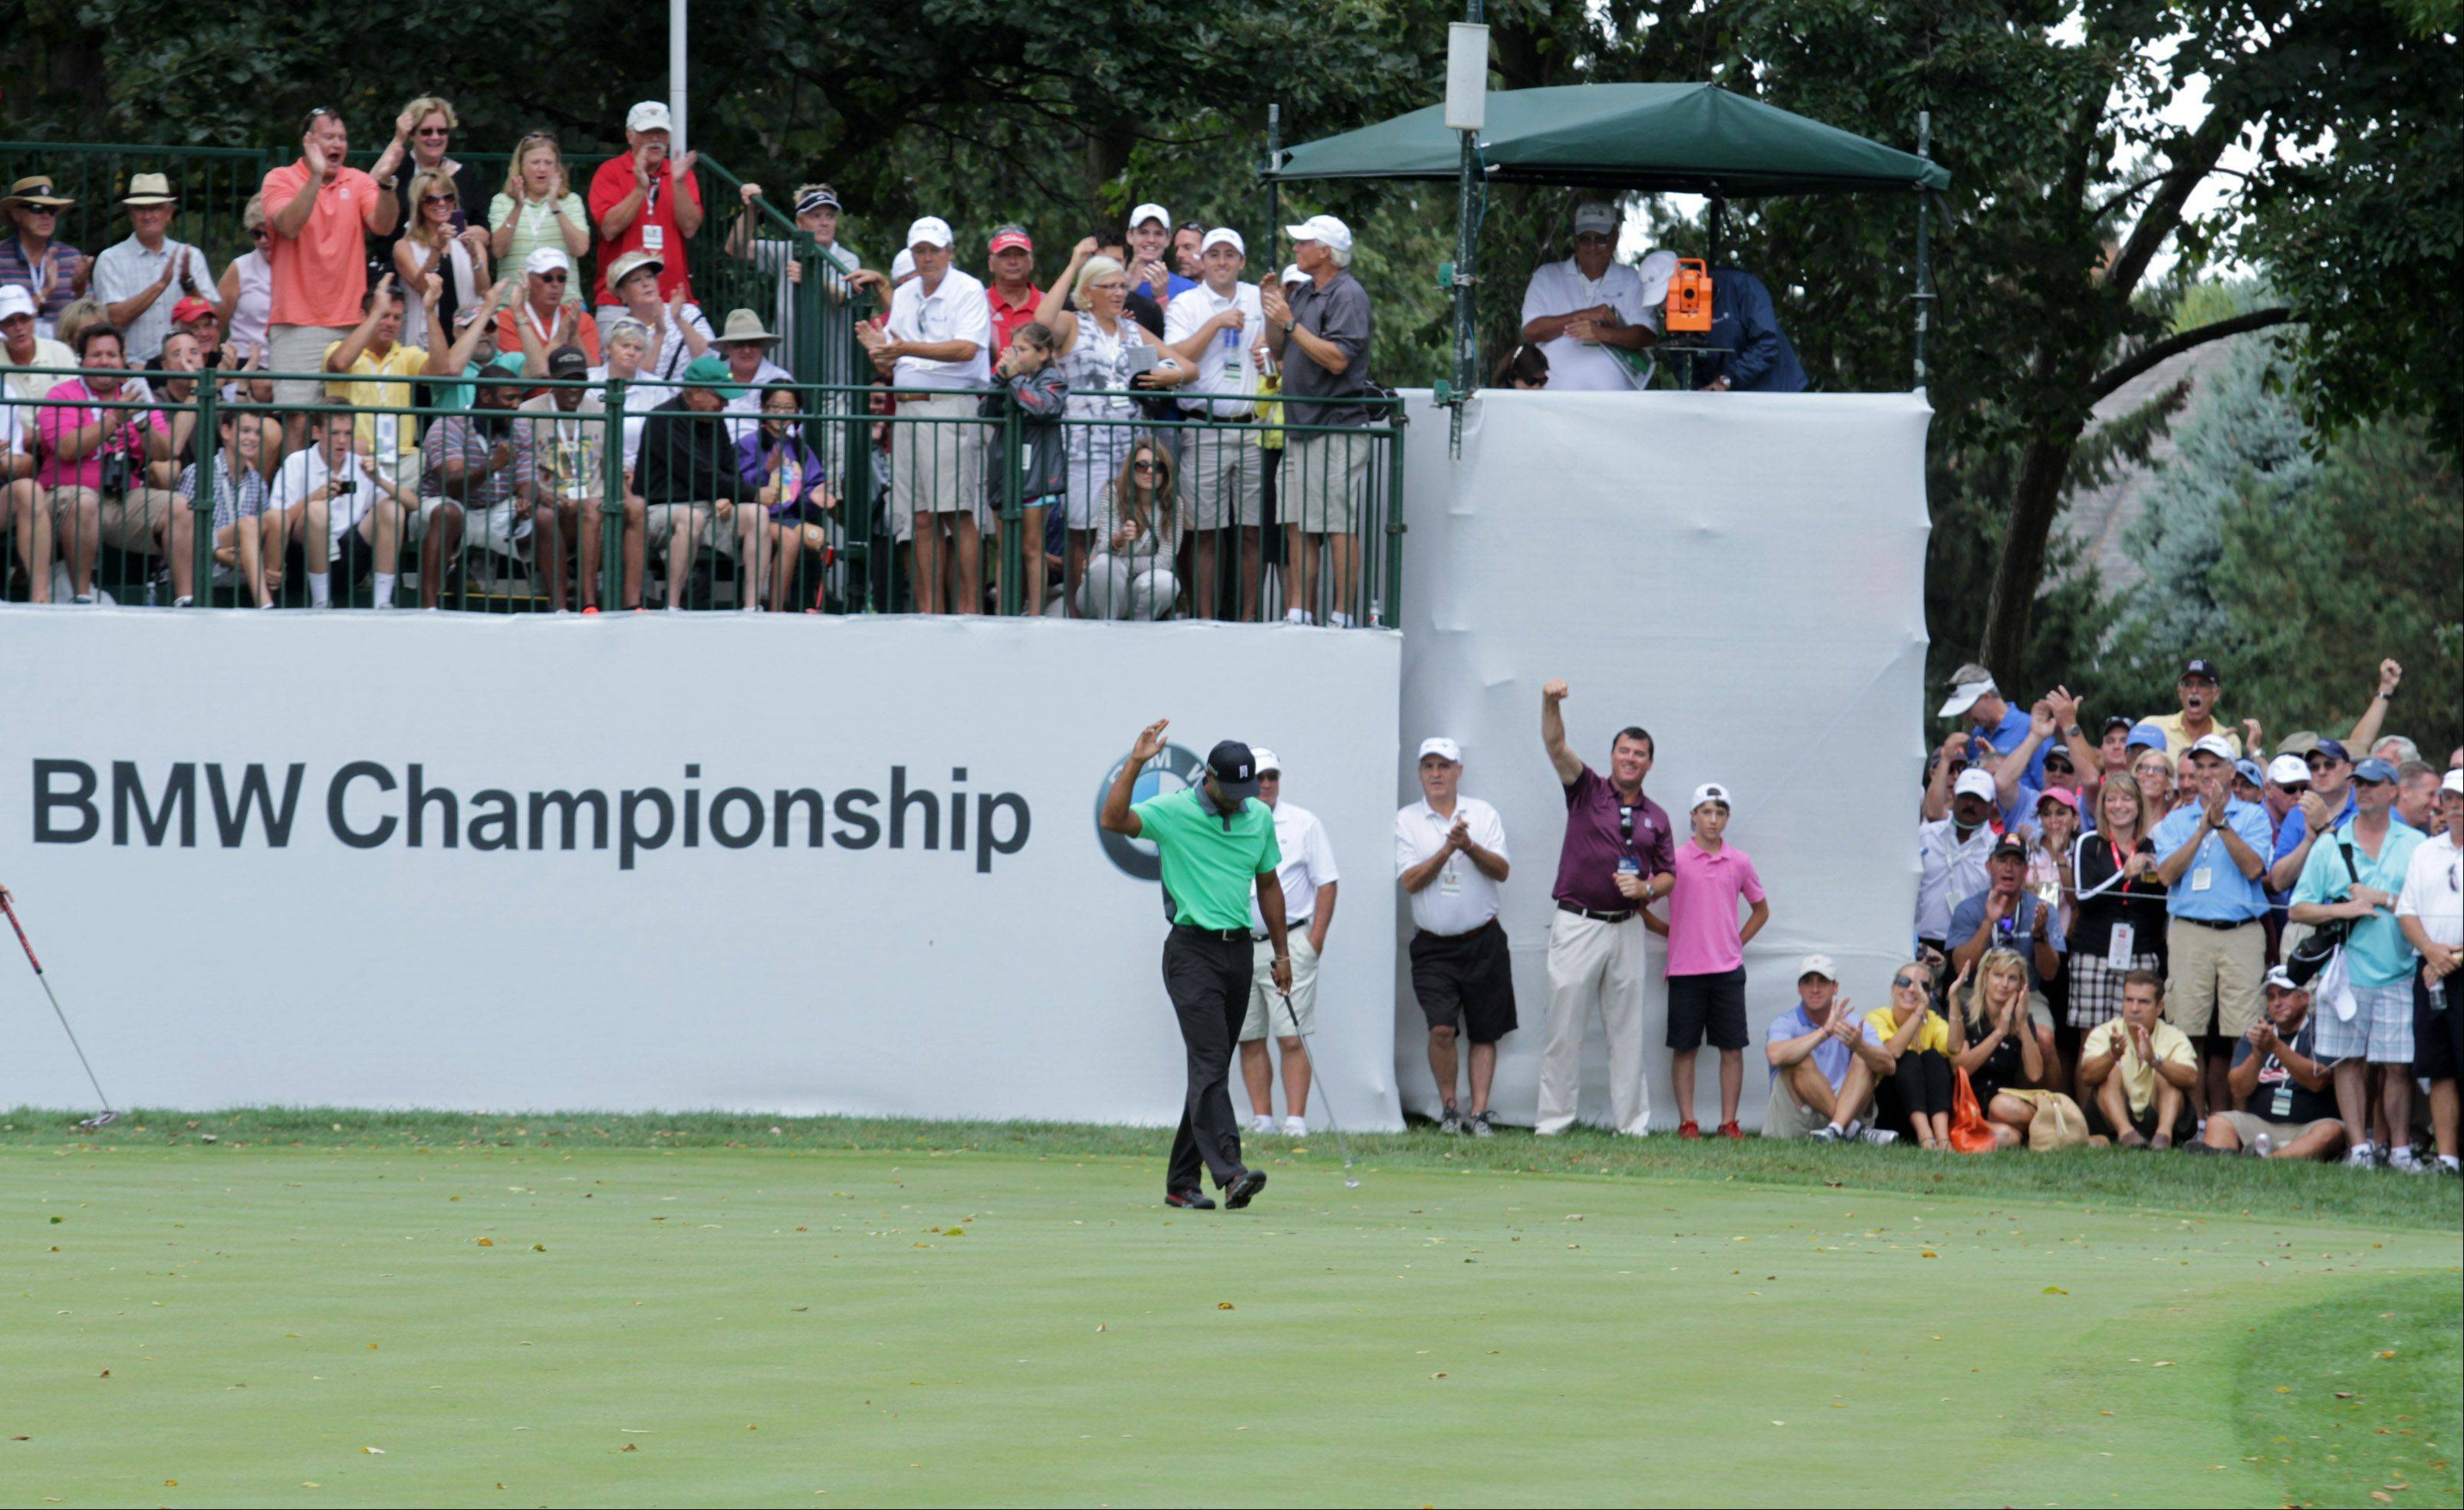 Fans cheer as Tiger Woods sinks a put on the 9th hole.